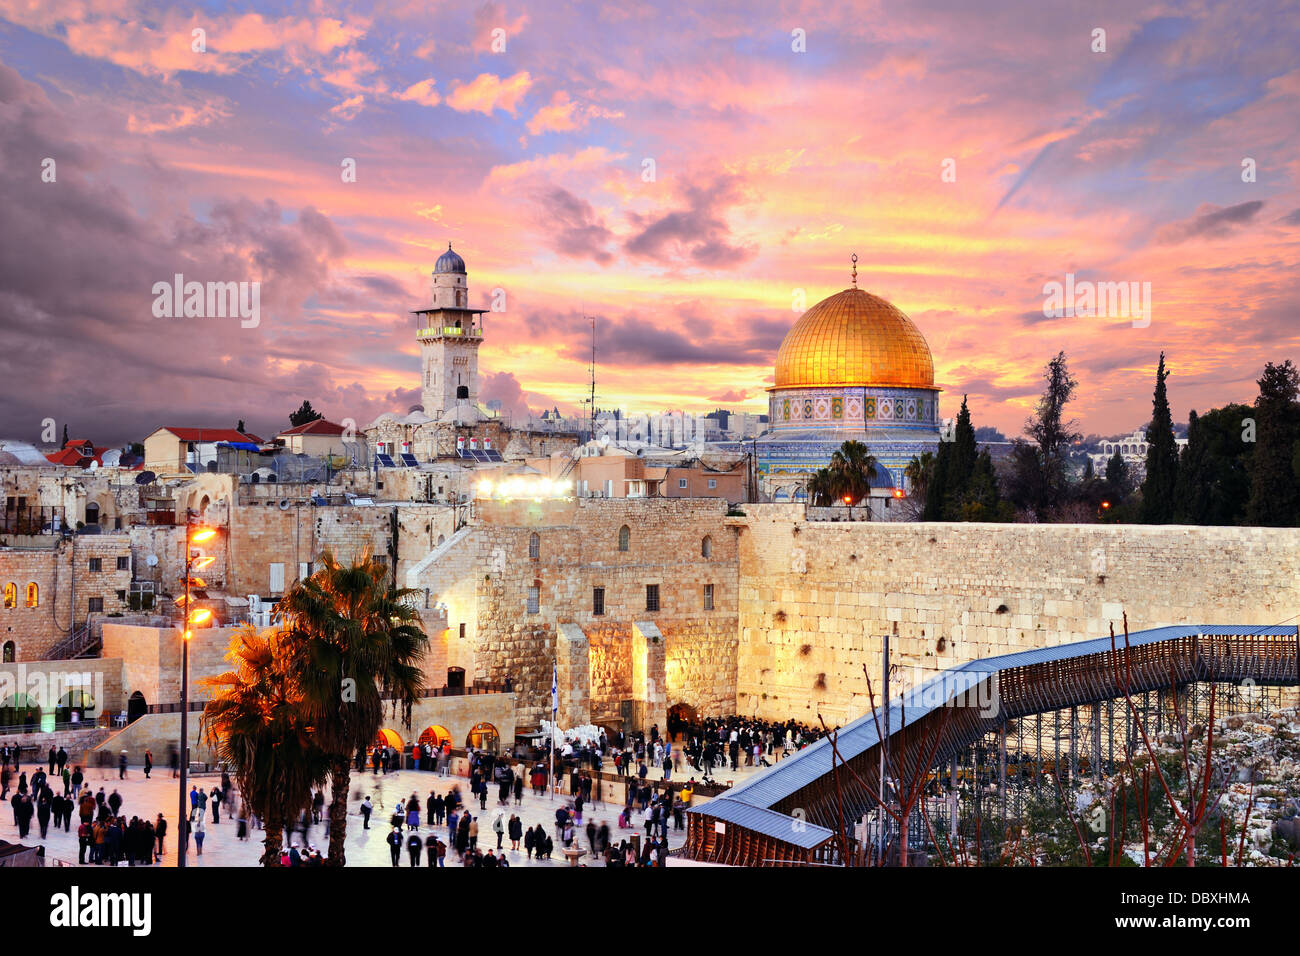 Skyline of the Old City at he Western Wall and Temple Mount in Jerusalem, Israel. - Stock Image